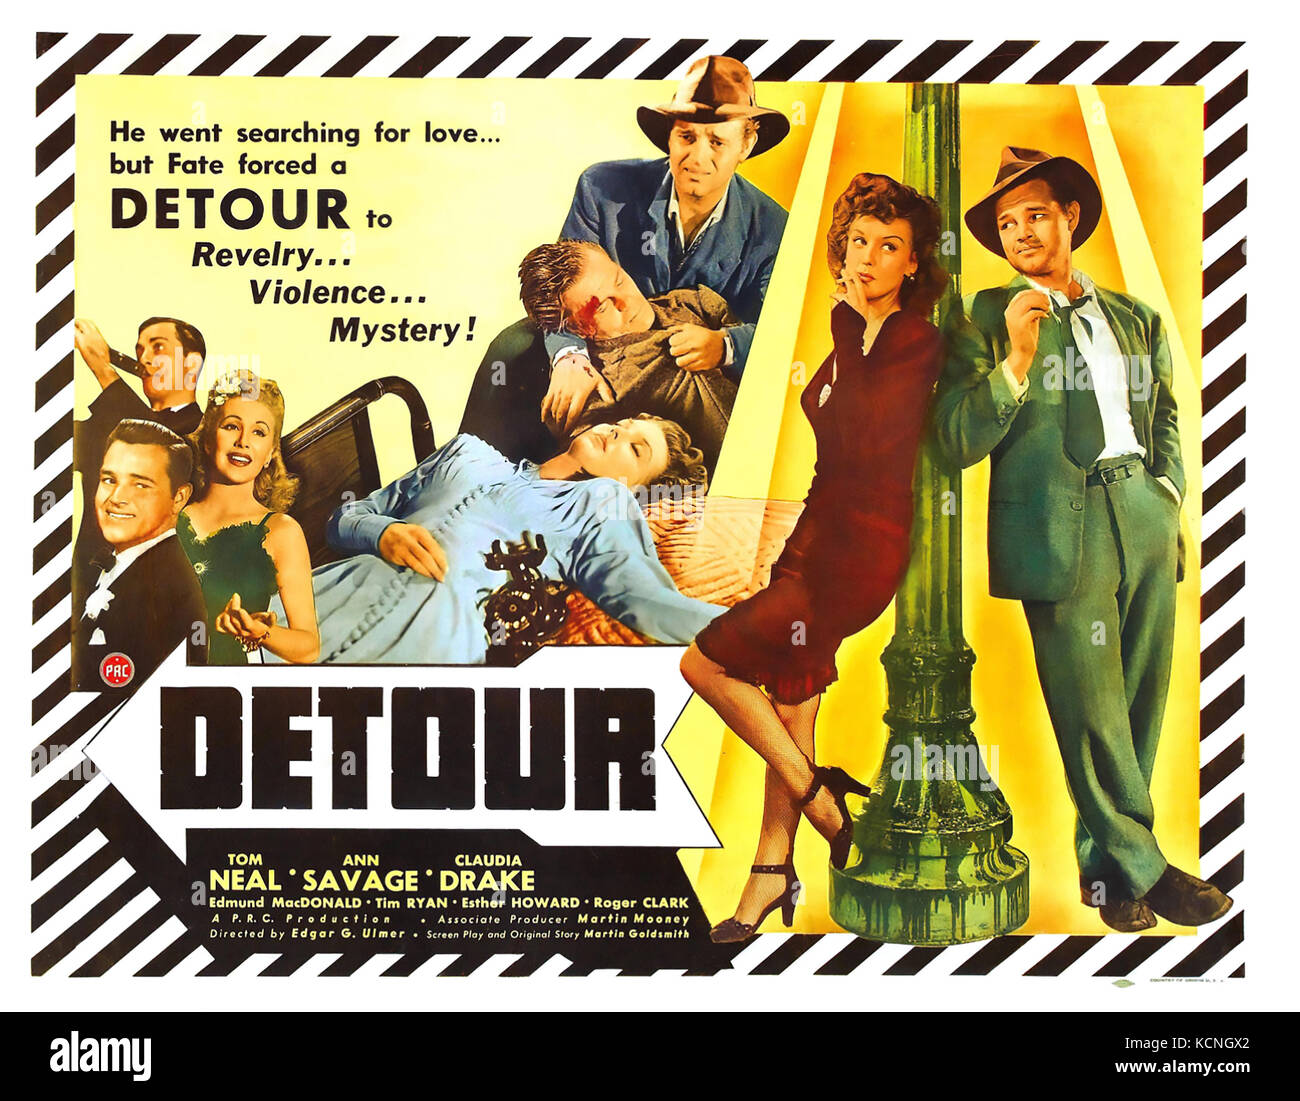 DETOUR 1945 PRC film with Tom Neal and Ann Savage - Stock Image